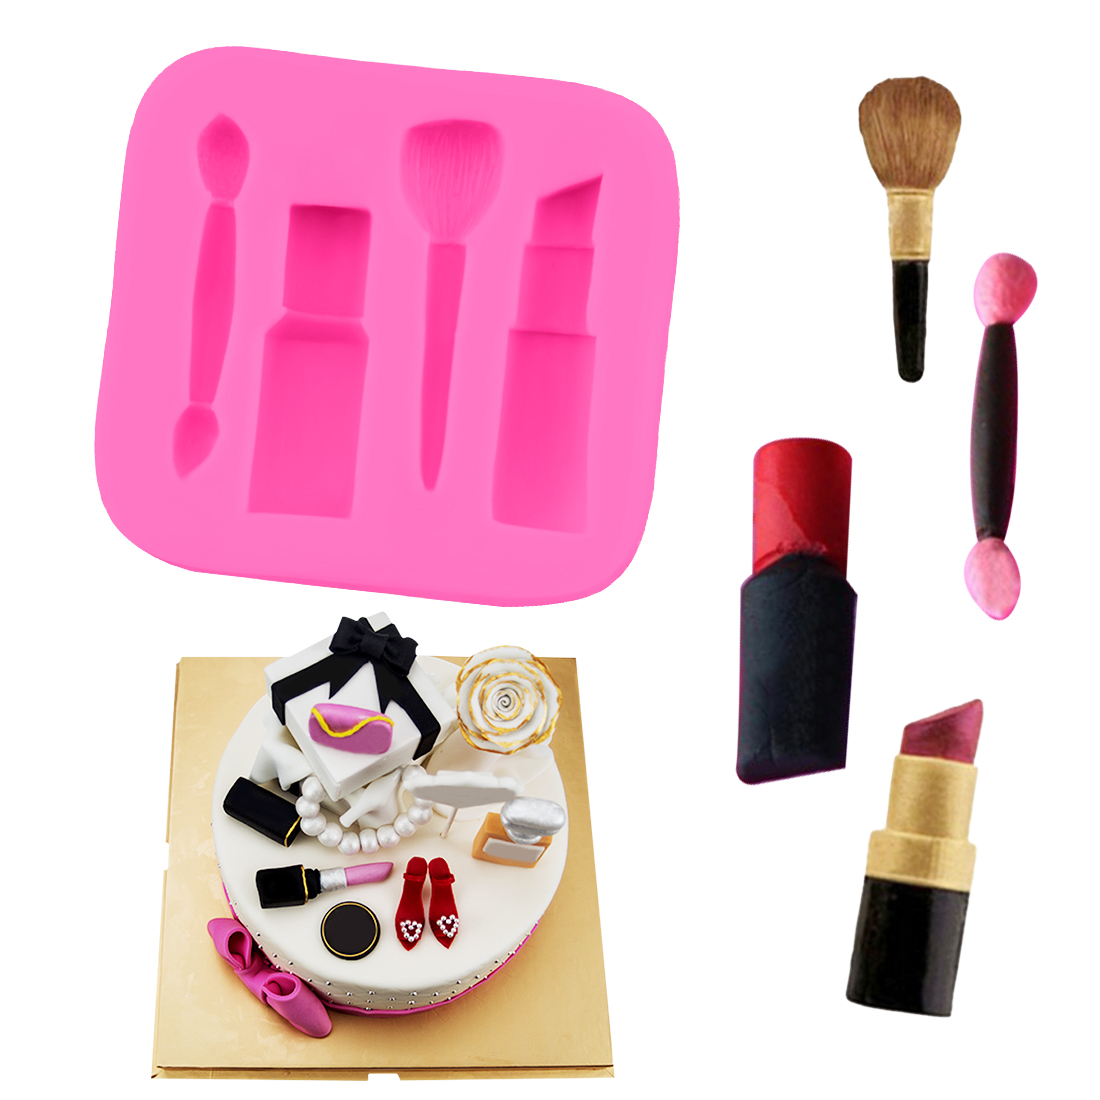 Cake Fondant Nails: Baking Pan 1PC Silicone Fondant Cake Mold Makeup Lipstick